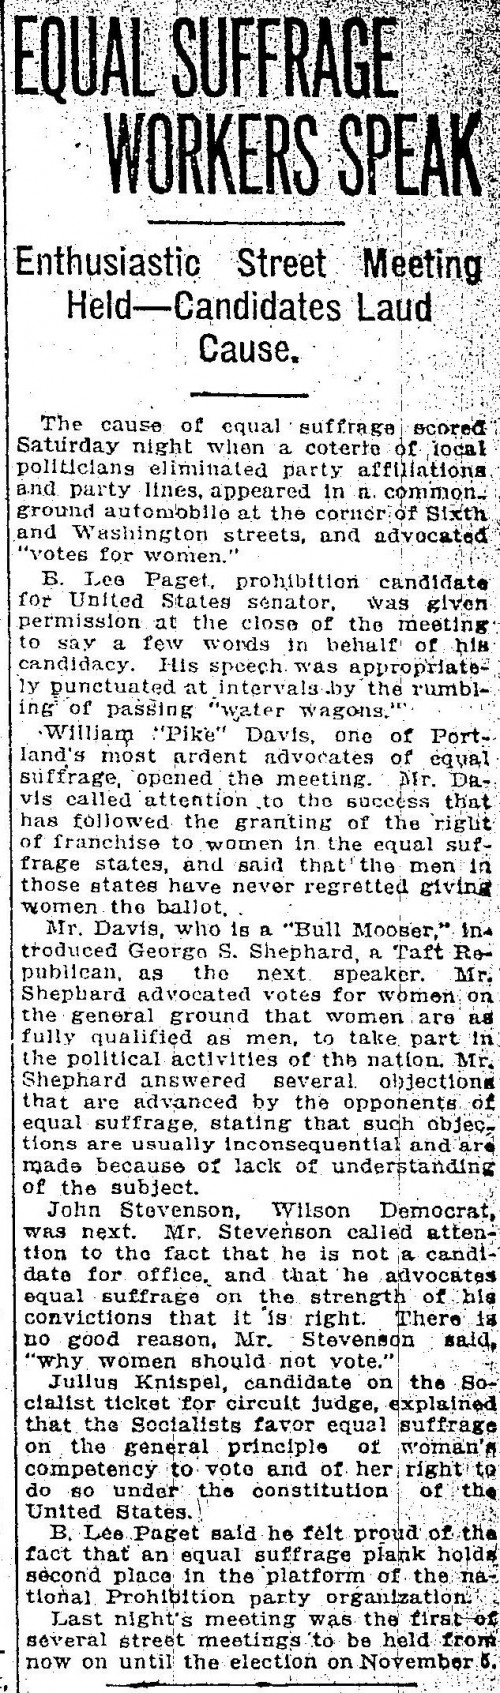 http://centuryofaction.org/images/uploads/OJ_10_7_1912_11_Equal_Suffrage_001_thumb.jpg